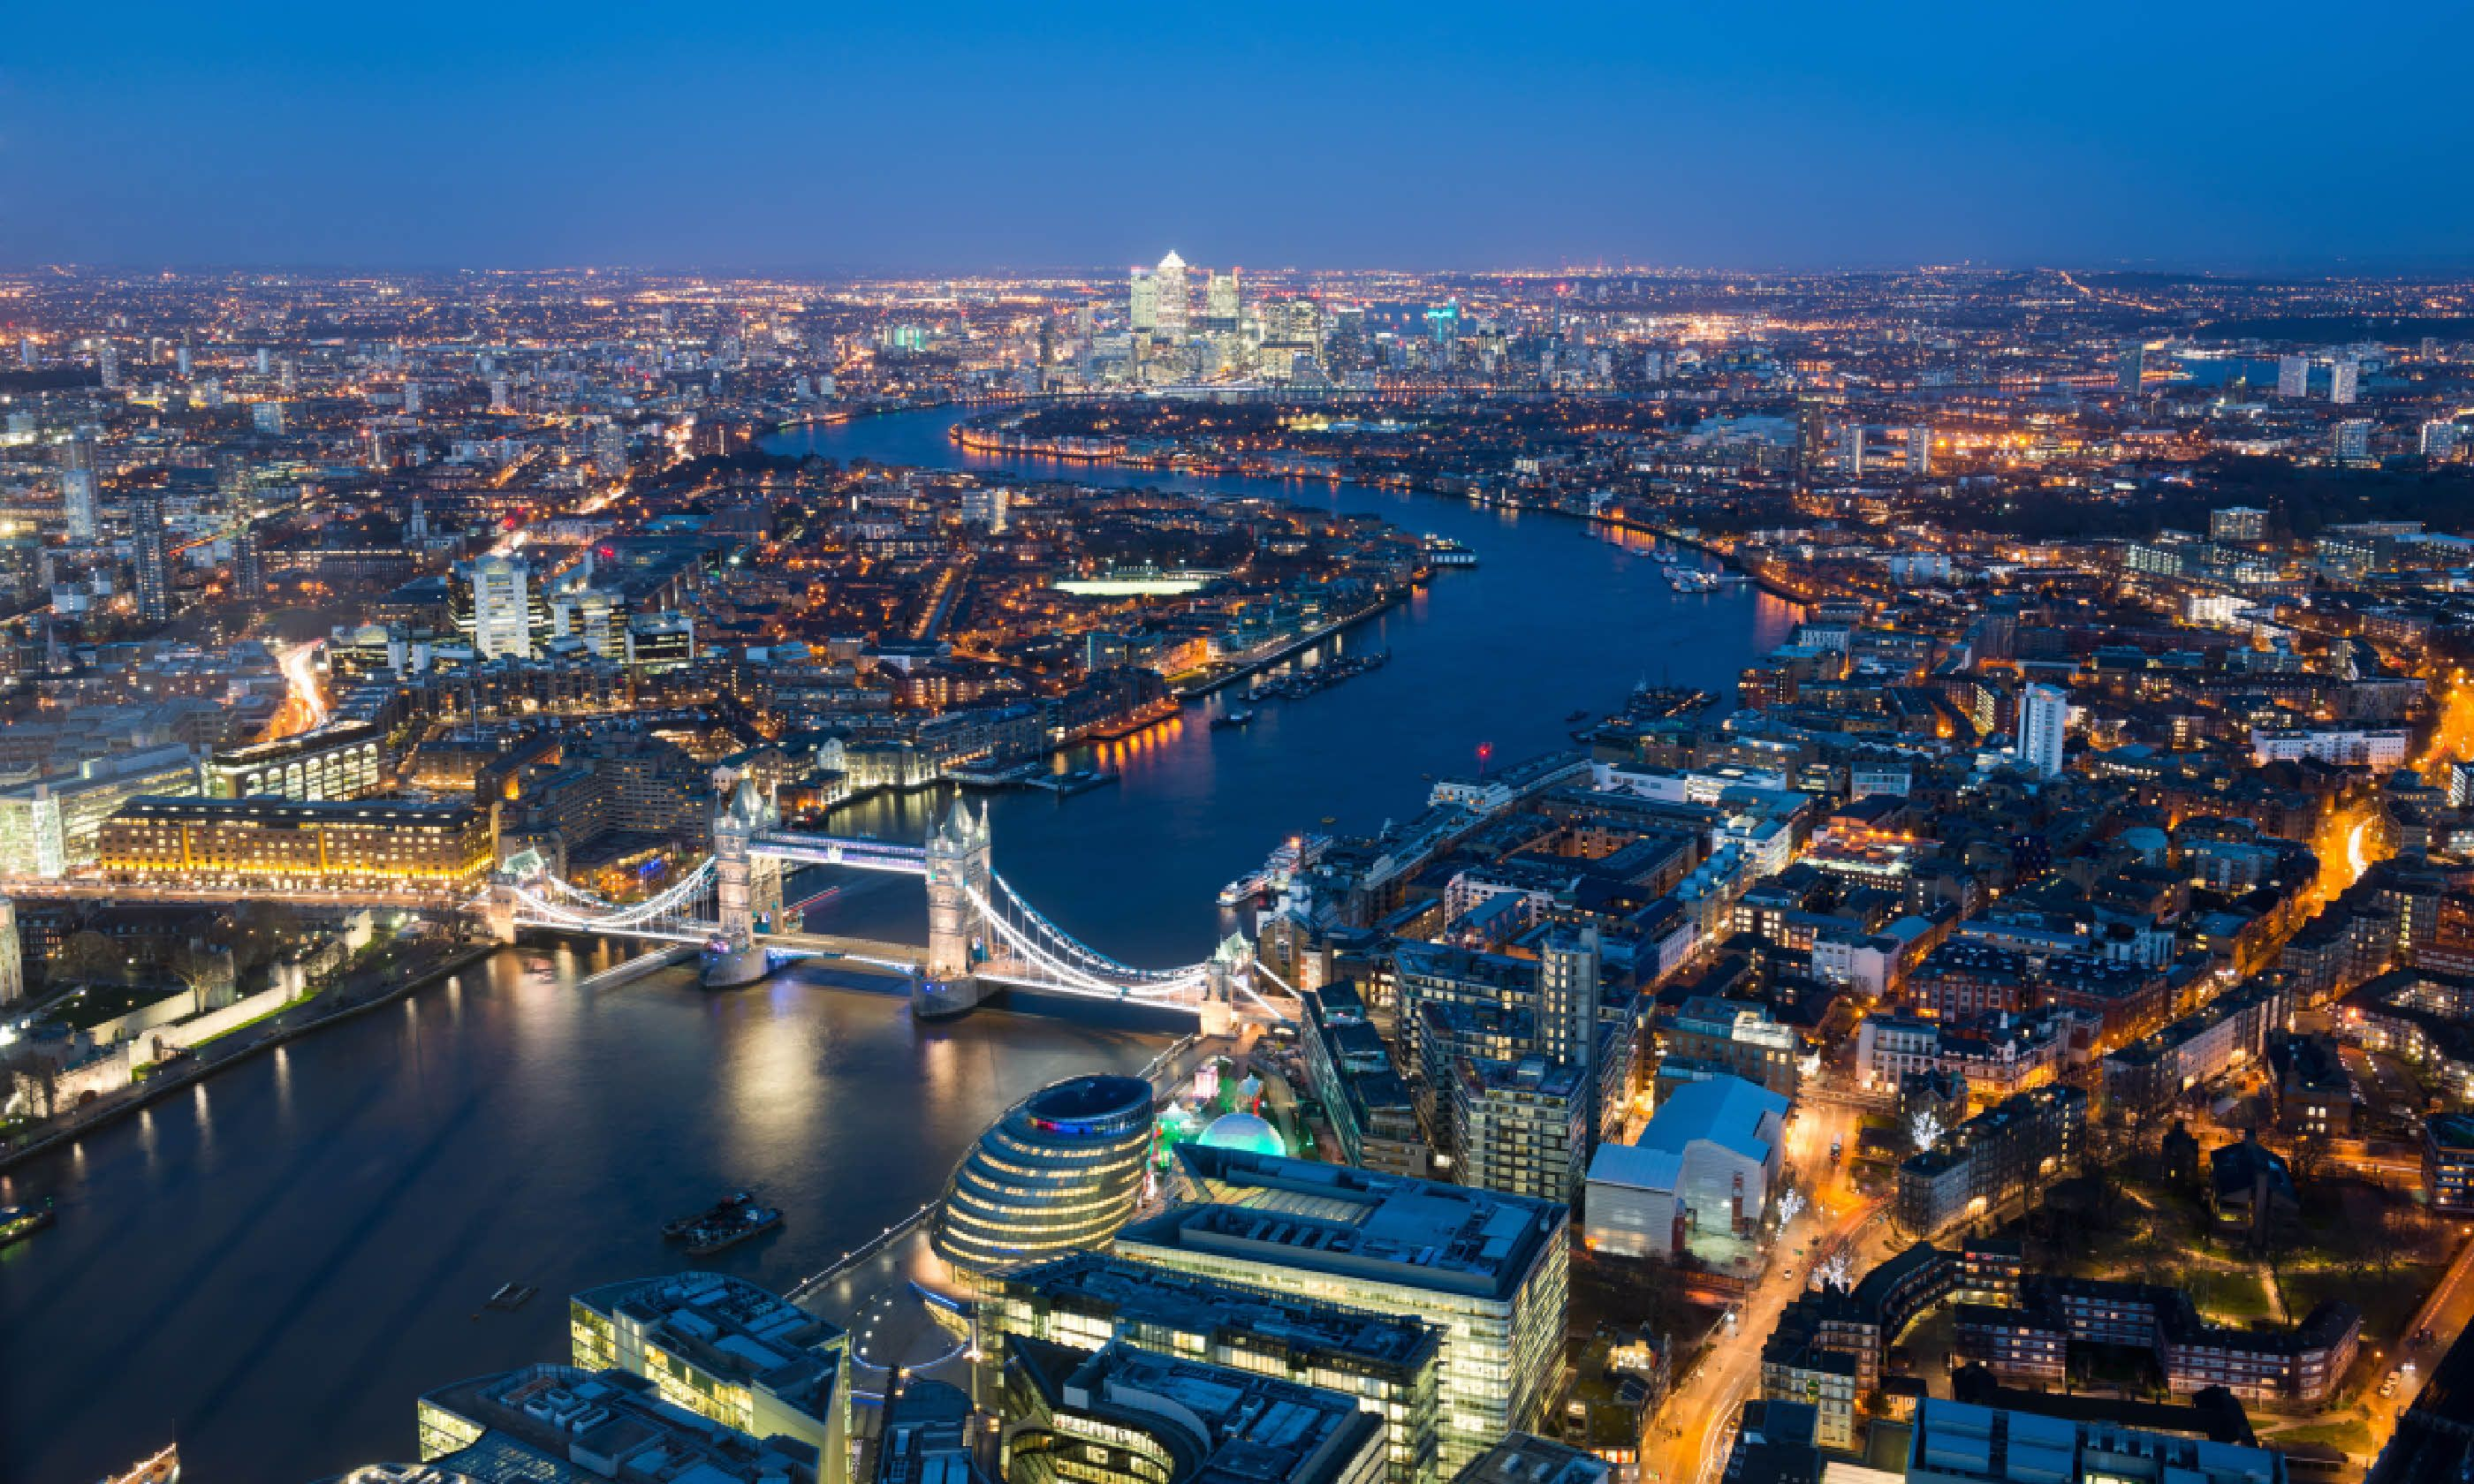 Aerial view of Tower Bridge (Shutterstock)